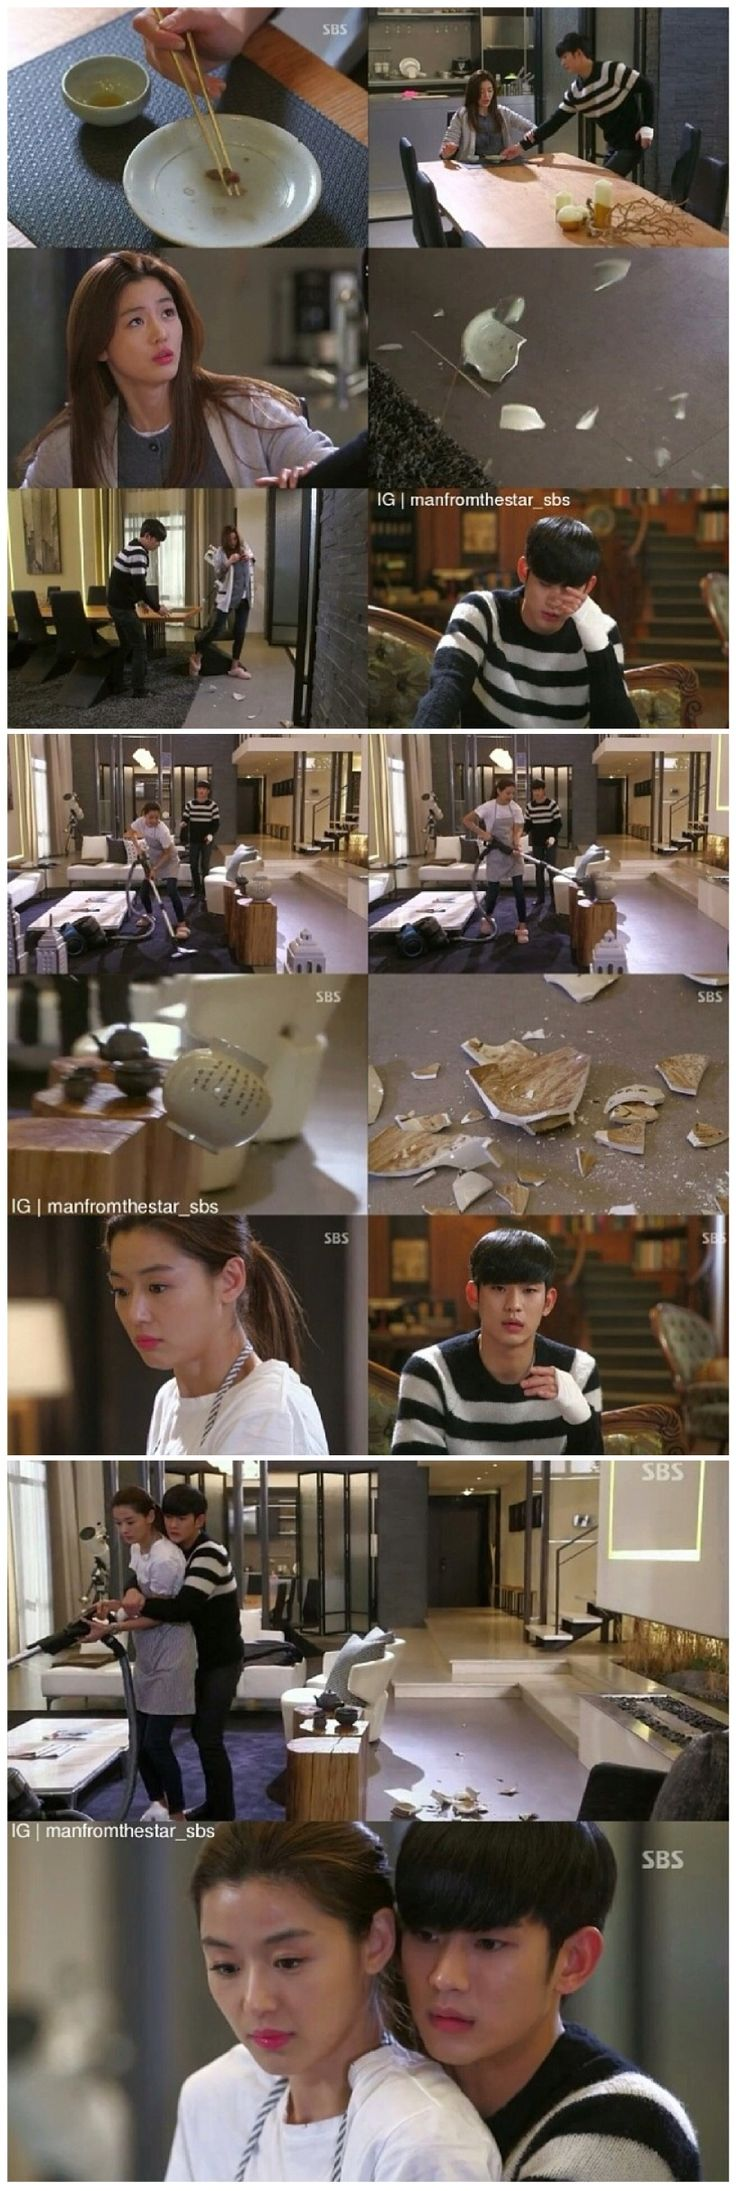 My Love From Another Star #kdrama funny scene as she breaks expensive stuff while cleaning